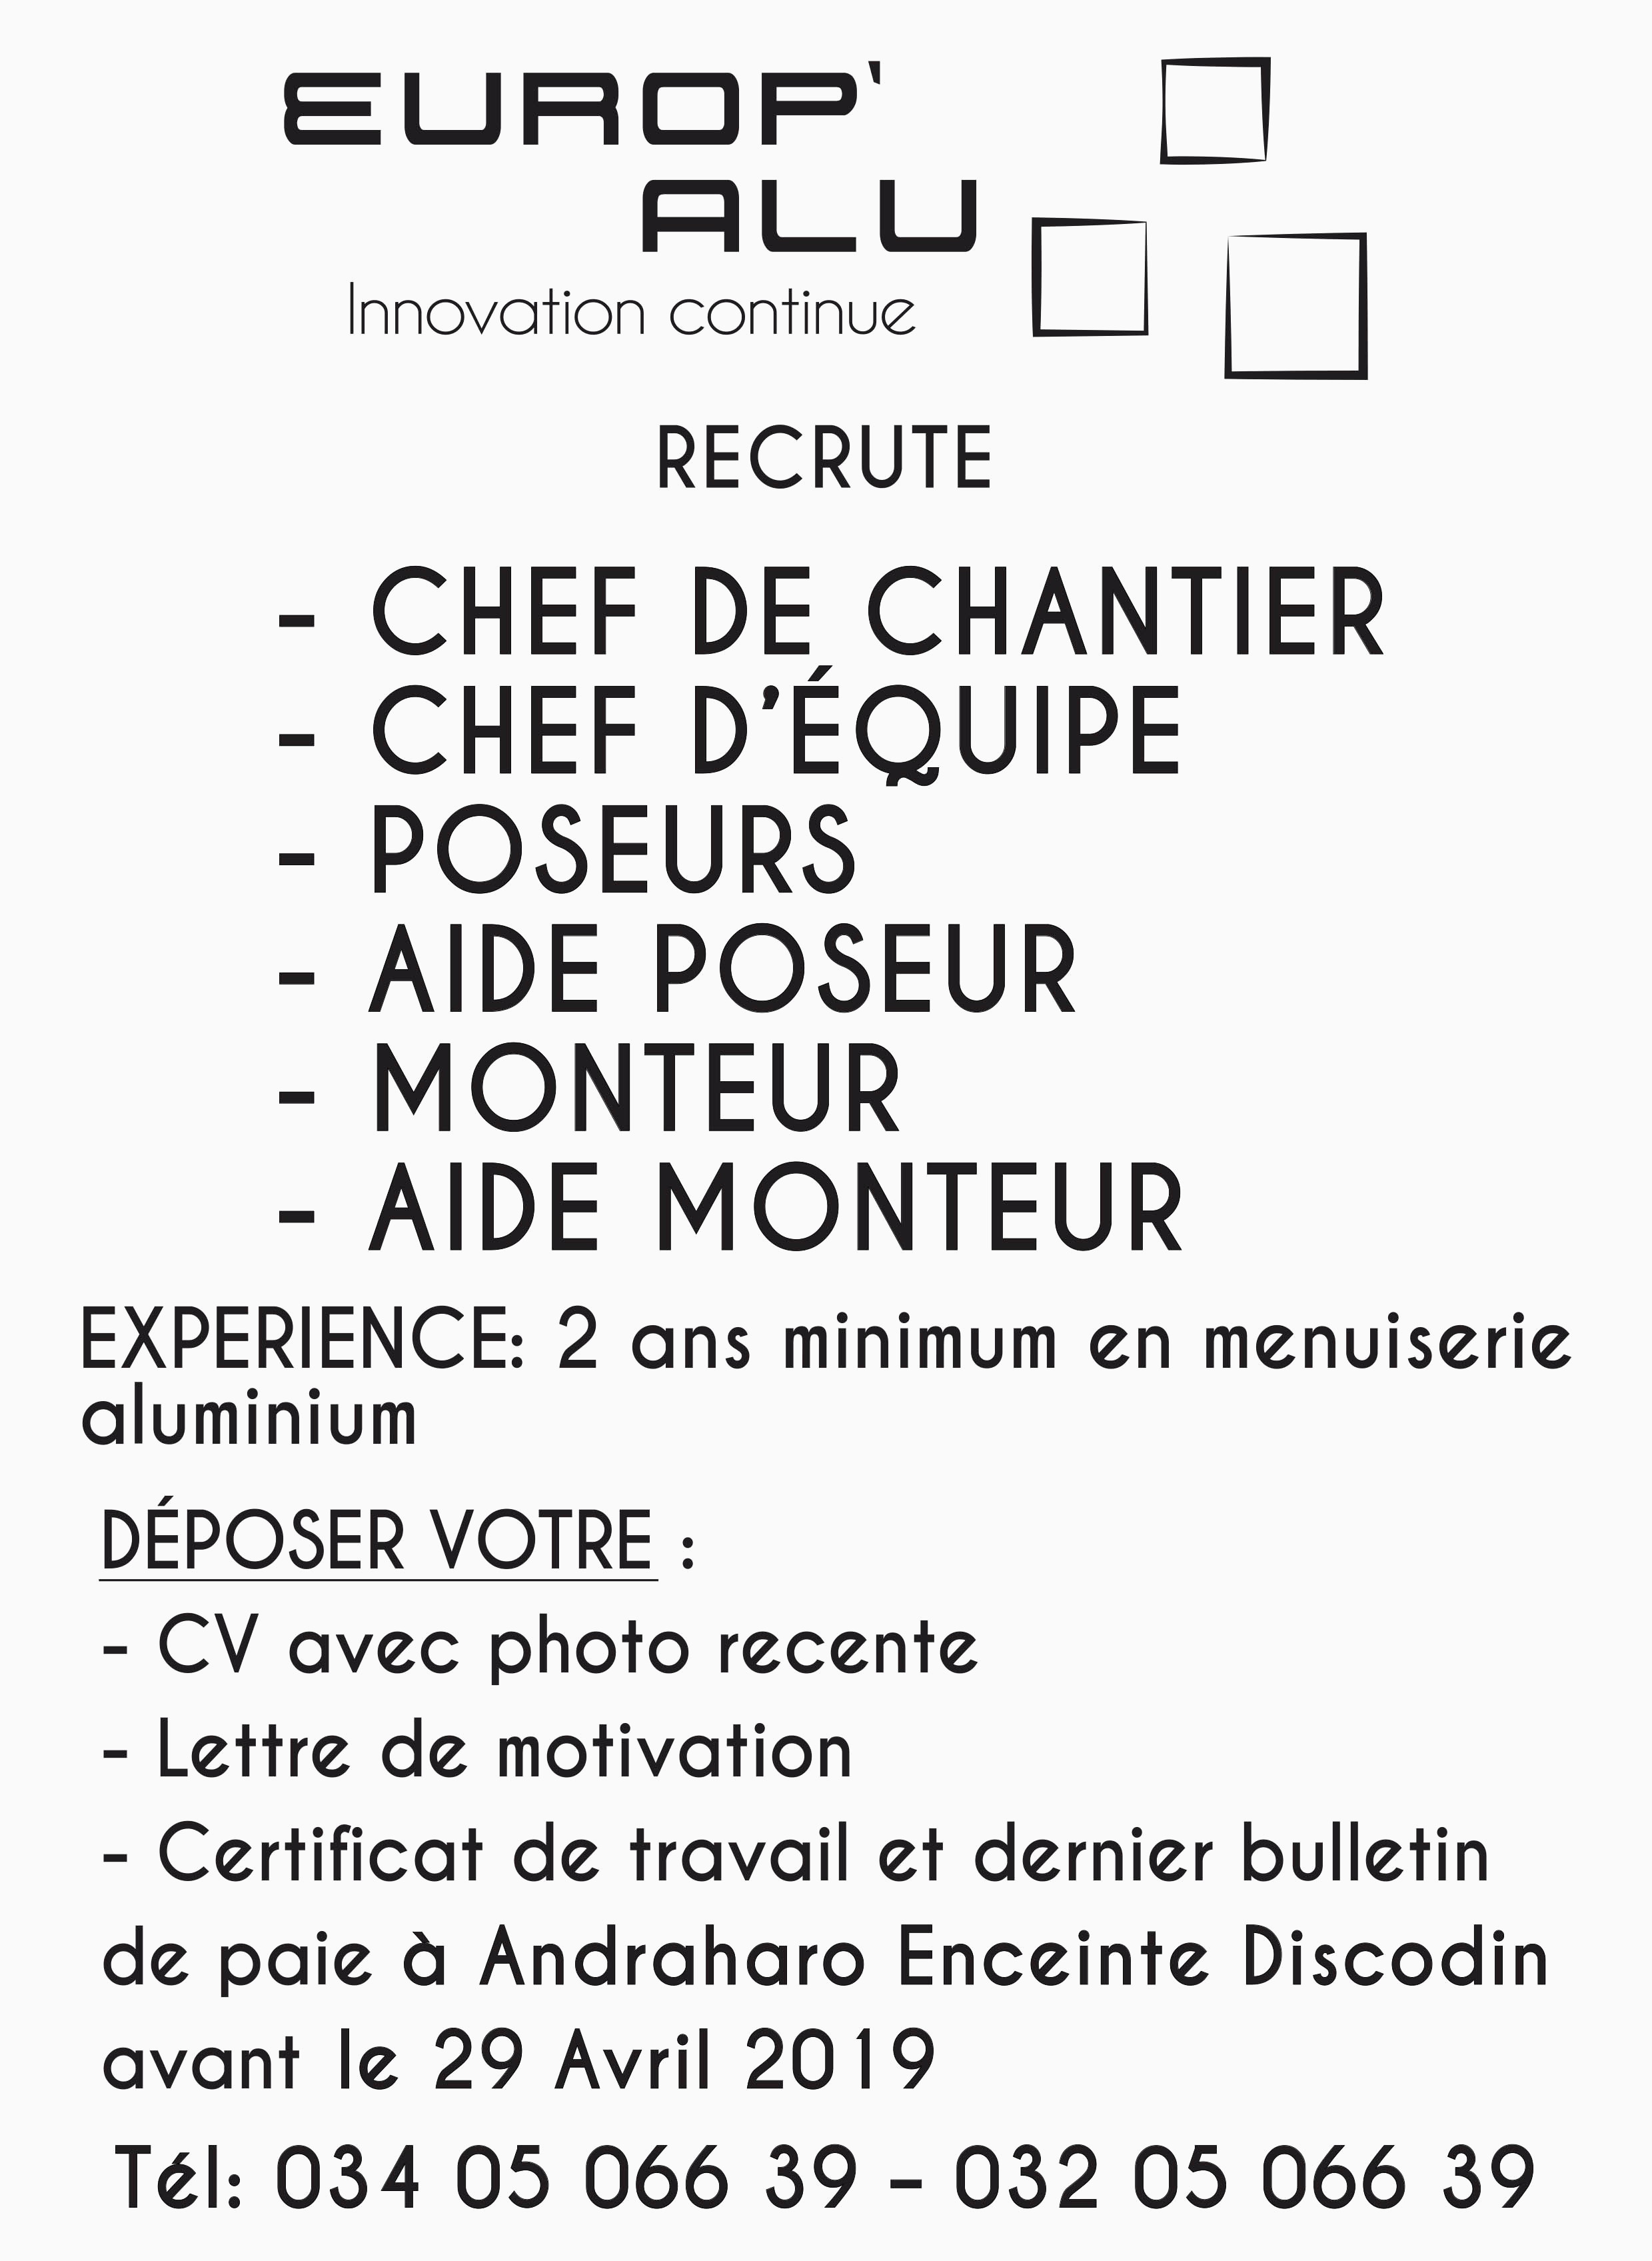 Lettre De Motivation Street Marketing Cv Menuisier Poseur